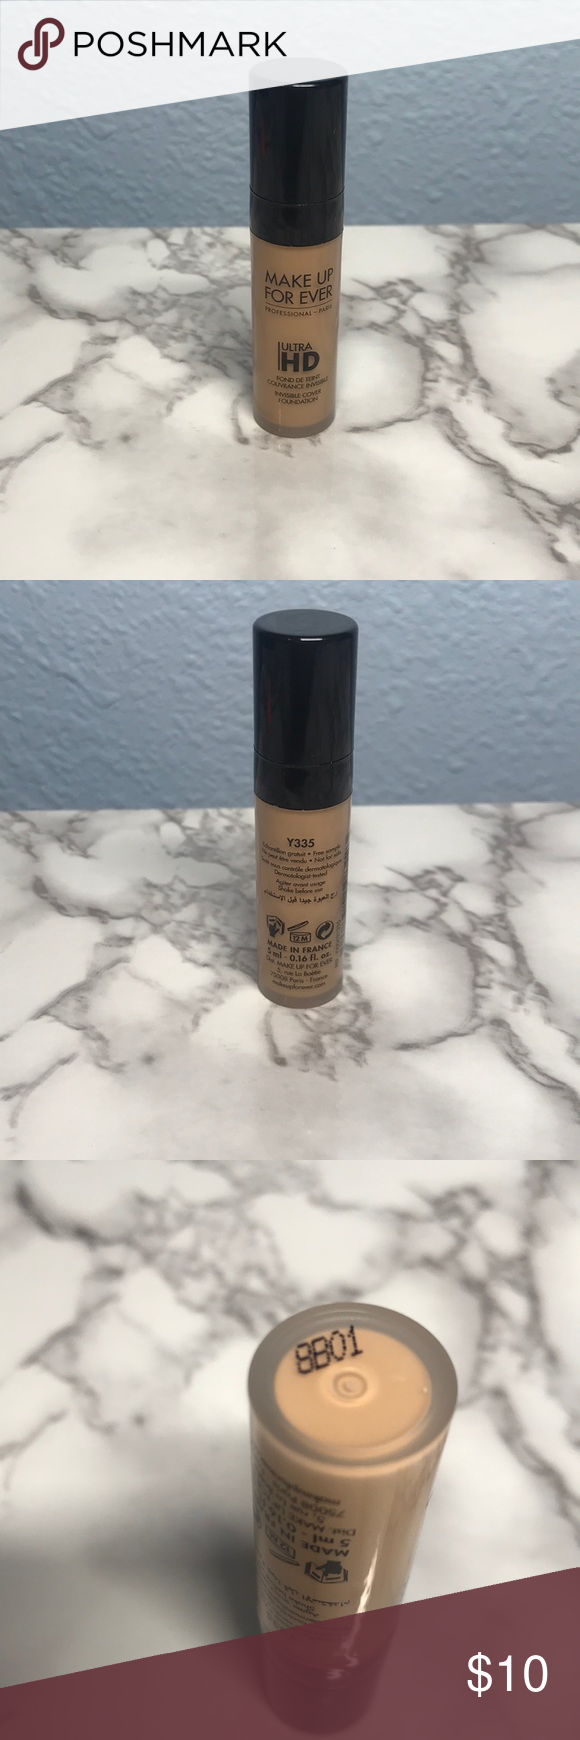 Makeup Forever Ultra HD Invisible Cover Foundation NWT